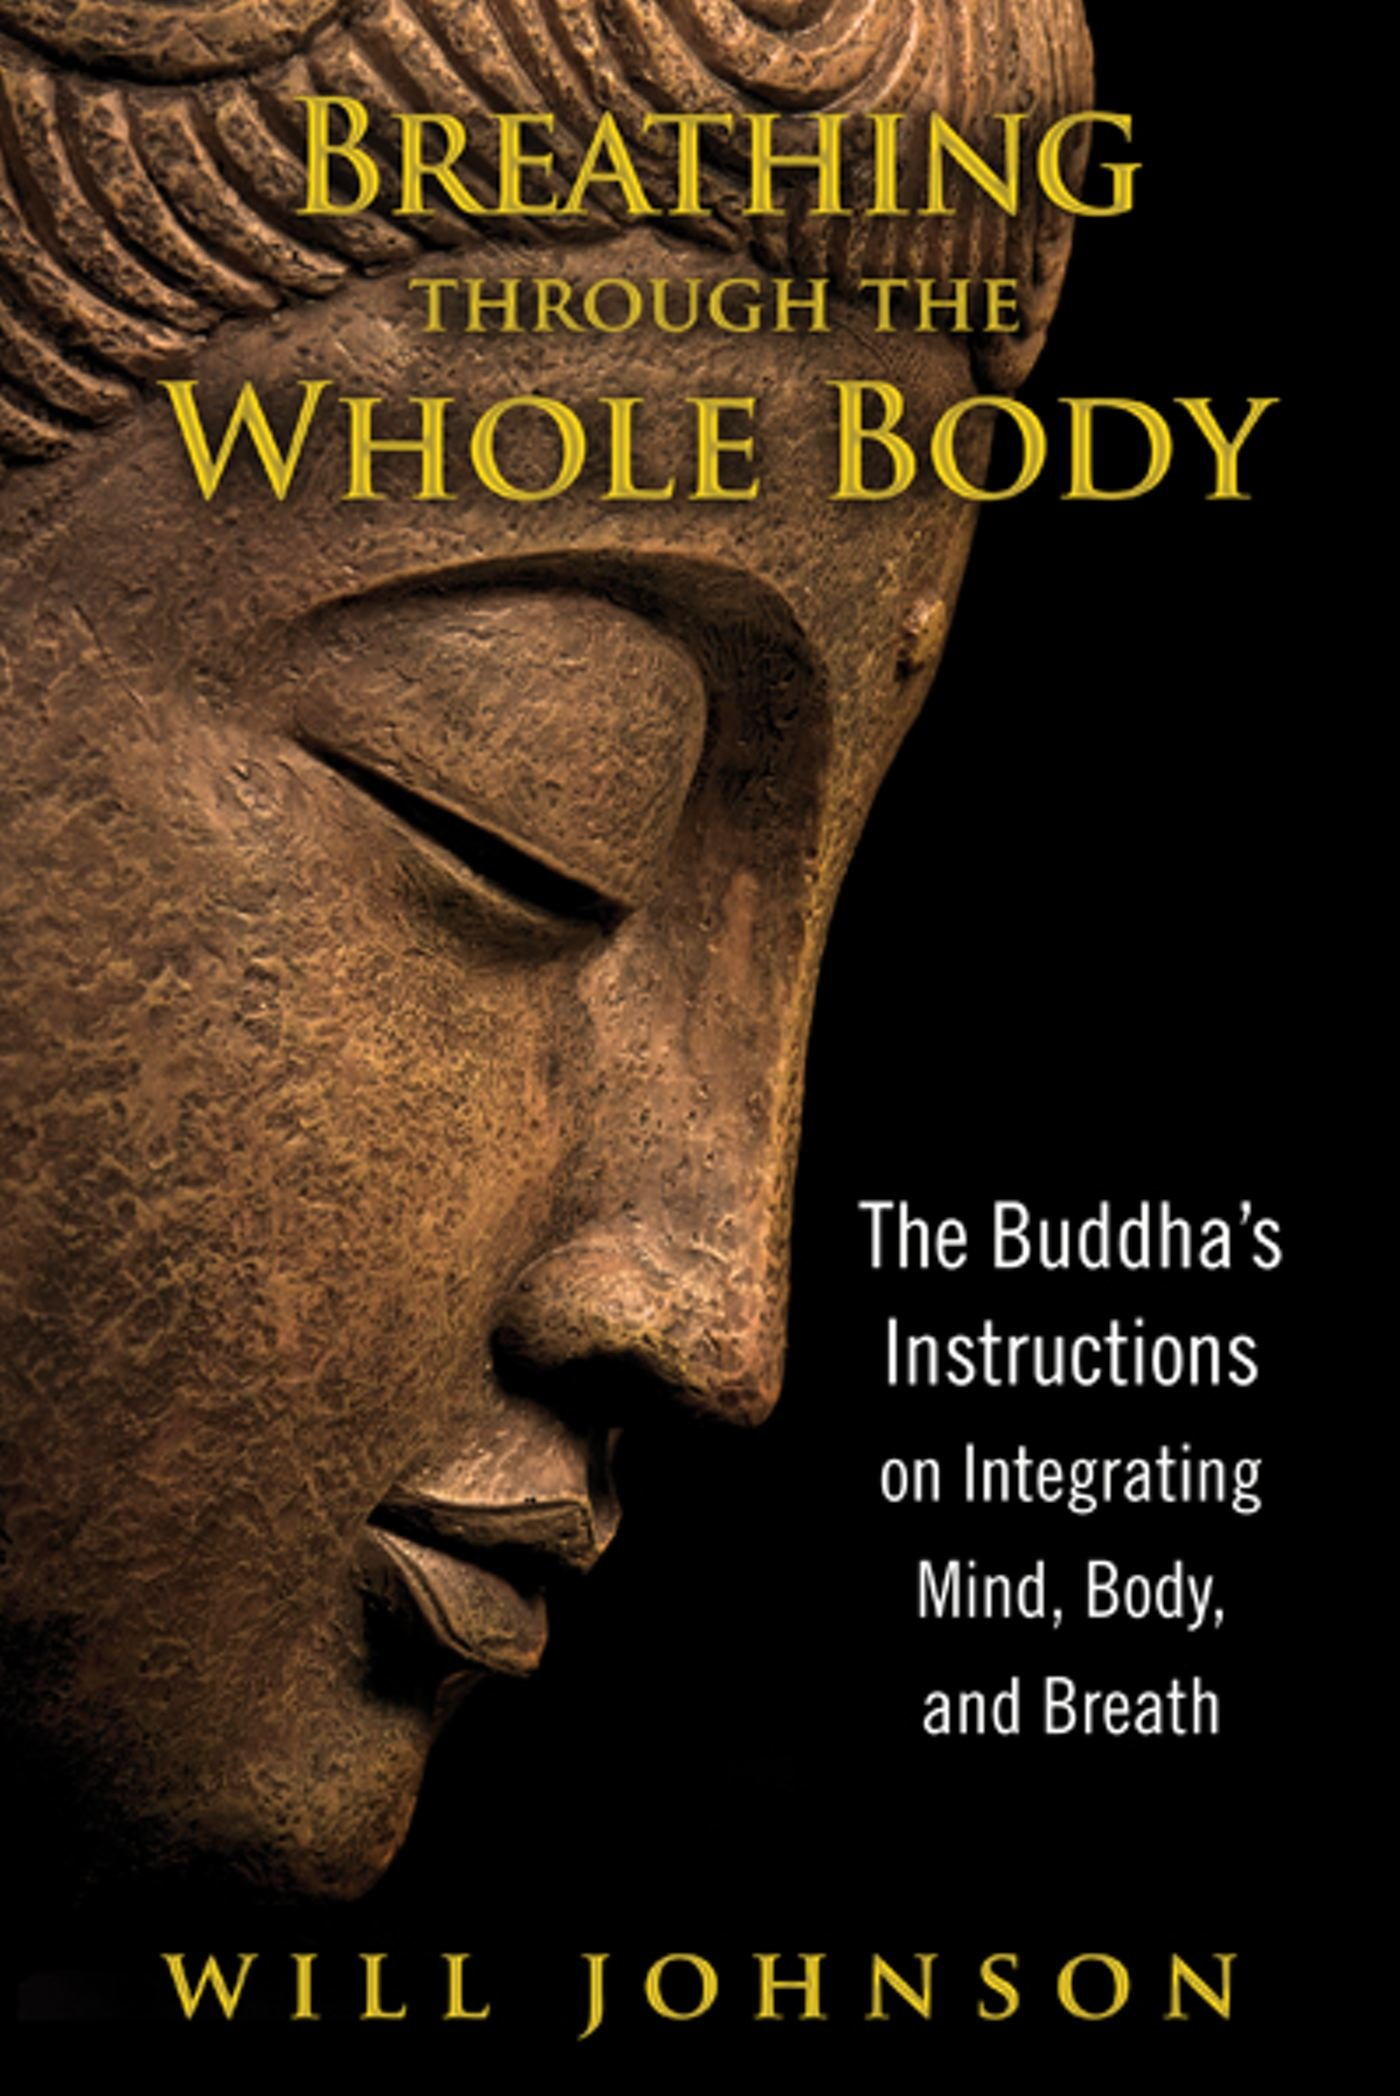 Breathing through the whole body the buddhas instructions on breathing through the whole body the buddhas instructions on integrating mind body and breath will johnson 9781594774348 amazon books fandeluxe Images